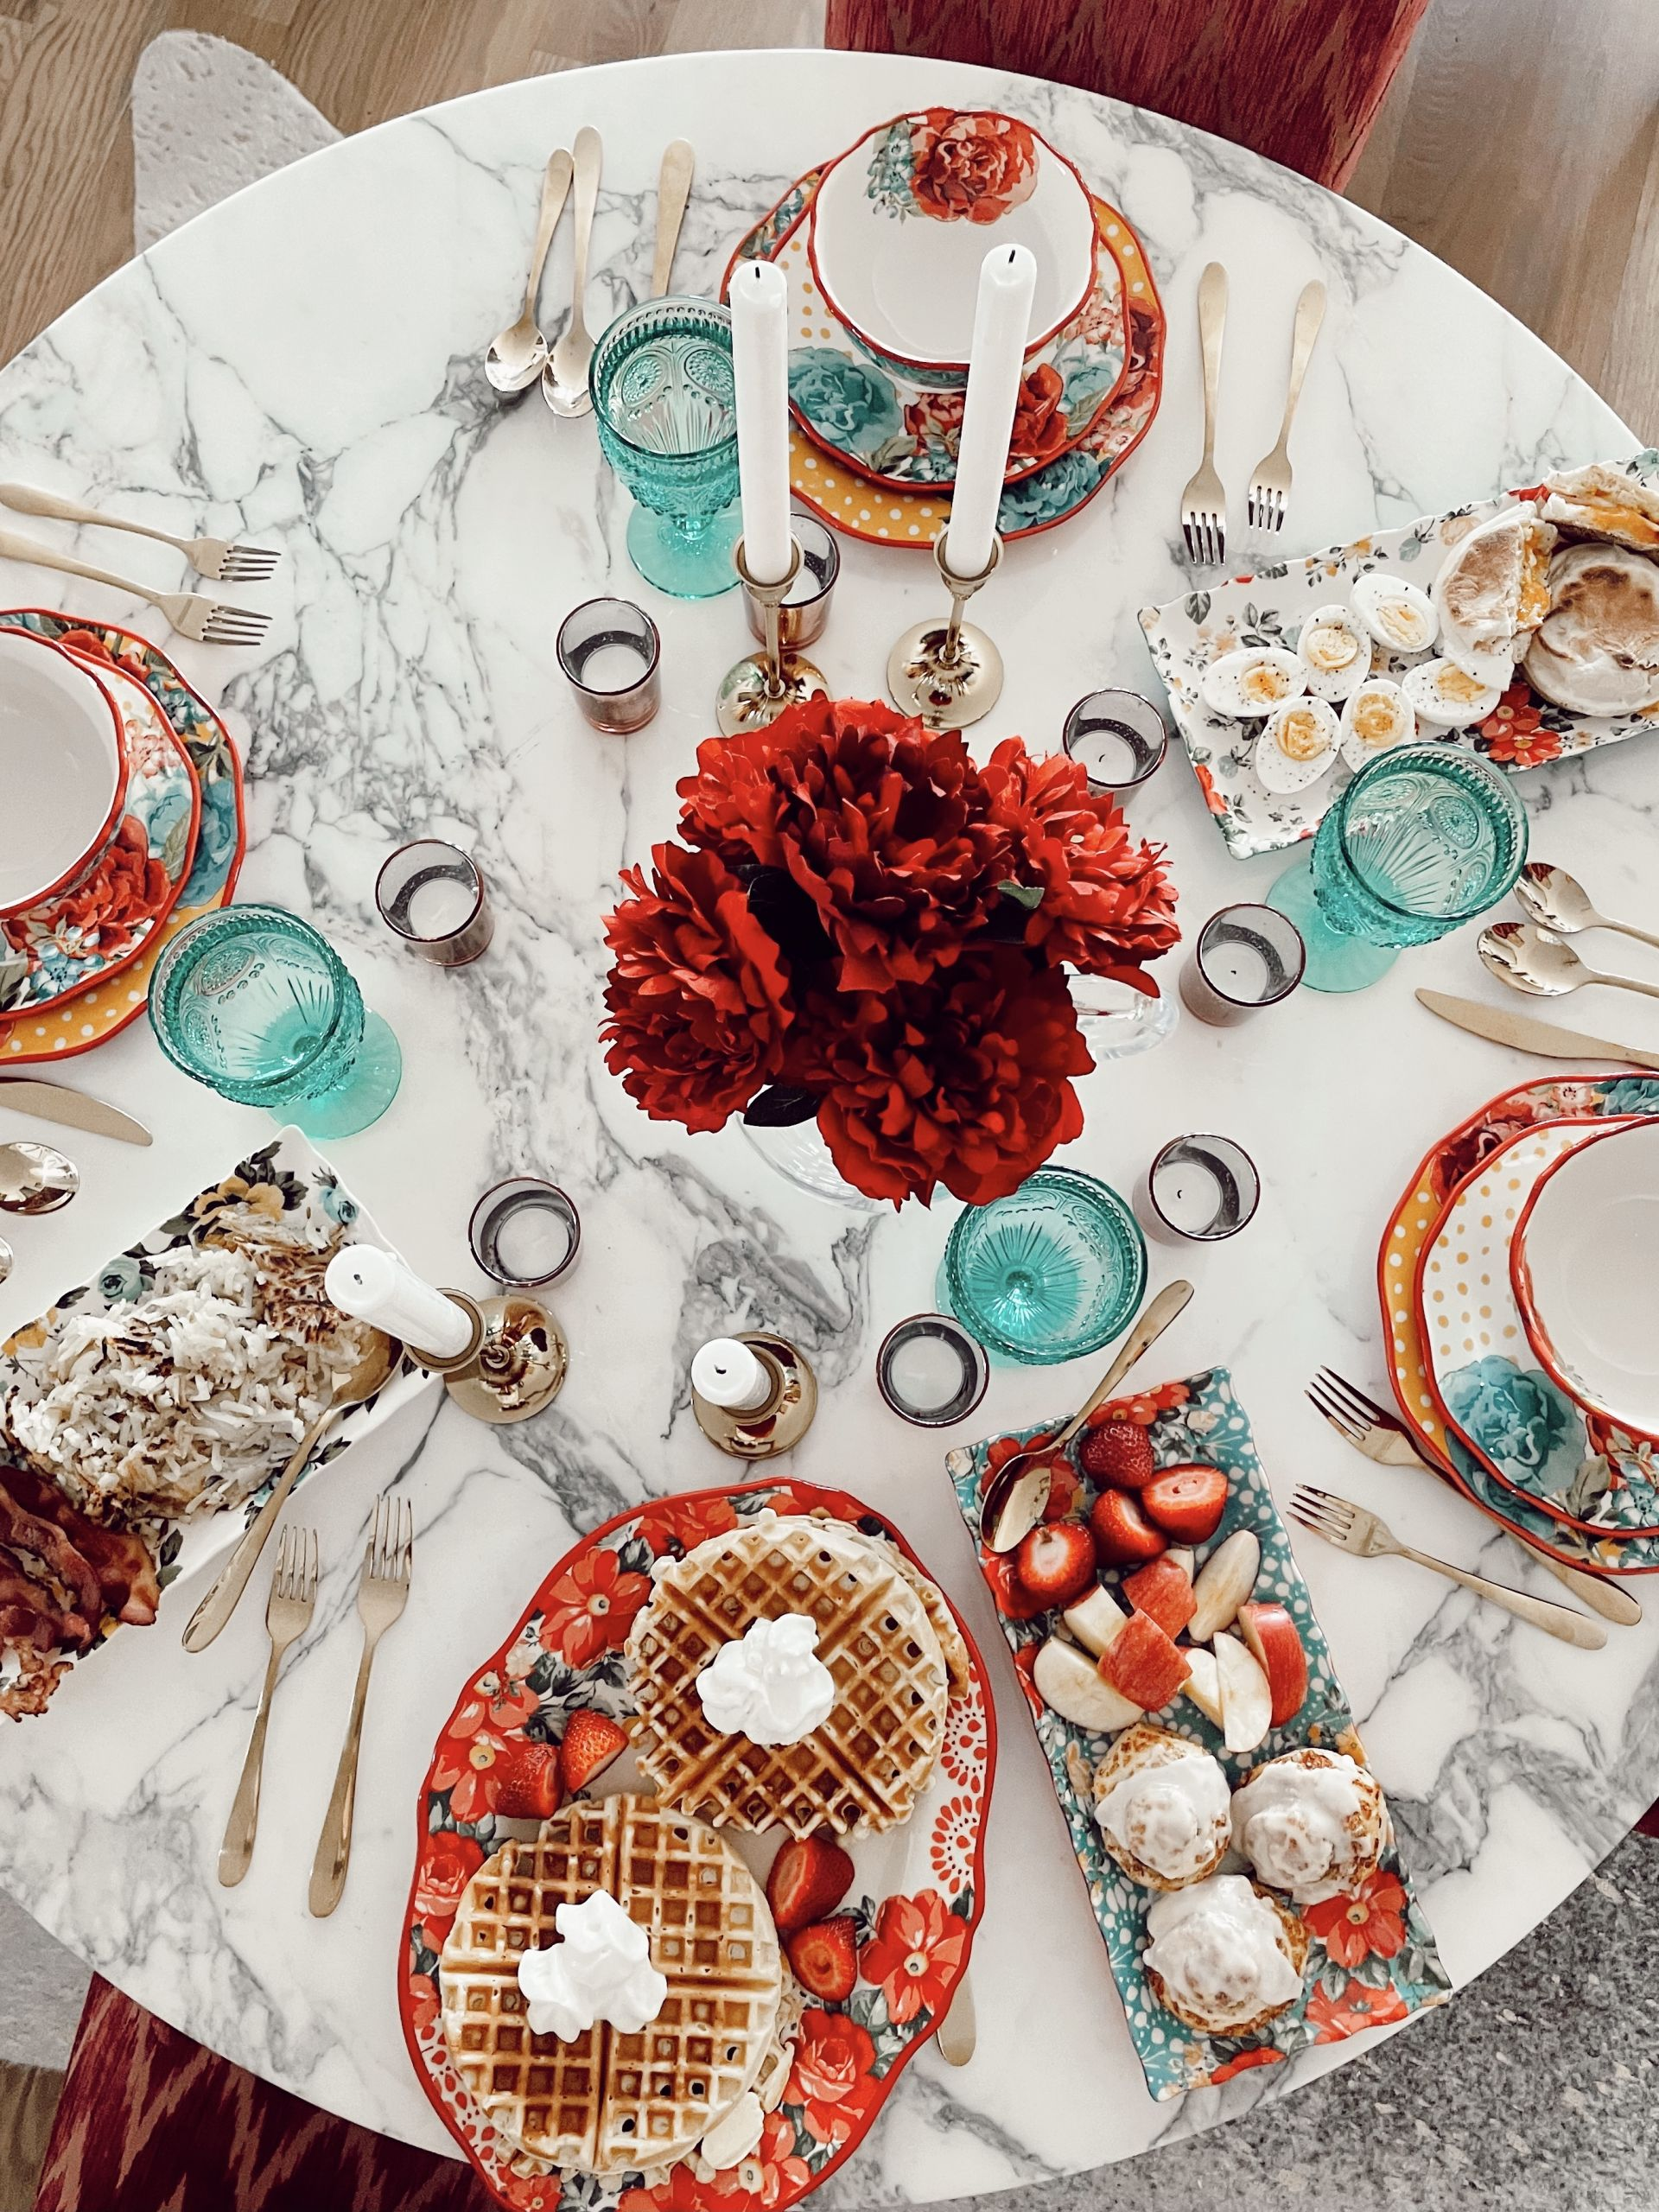 pretty kitchen serve wear, breakfast set up, how to host an affordable brunch party, pretty at home brunch set up, hosting at home with Walmart, brunch set up, brunch party ideas, glam brunch set up, glam breakfast set up, Walmart breakfast appliances, Walmart cookware, Walmart cooking essentials, affordable cookware, Walmart home, Walmart kitchen appliances, Walmart tabletop finds, Pioneer Women Walmart, Walmart kitchen essentials, waffle bar ideas, waffle bar party, blue red and yellow tabletop, gold flatware, gold silverware table settings